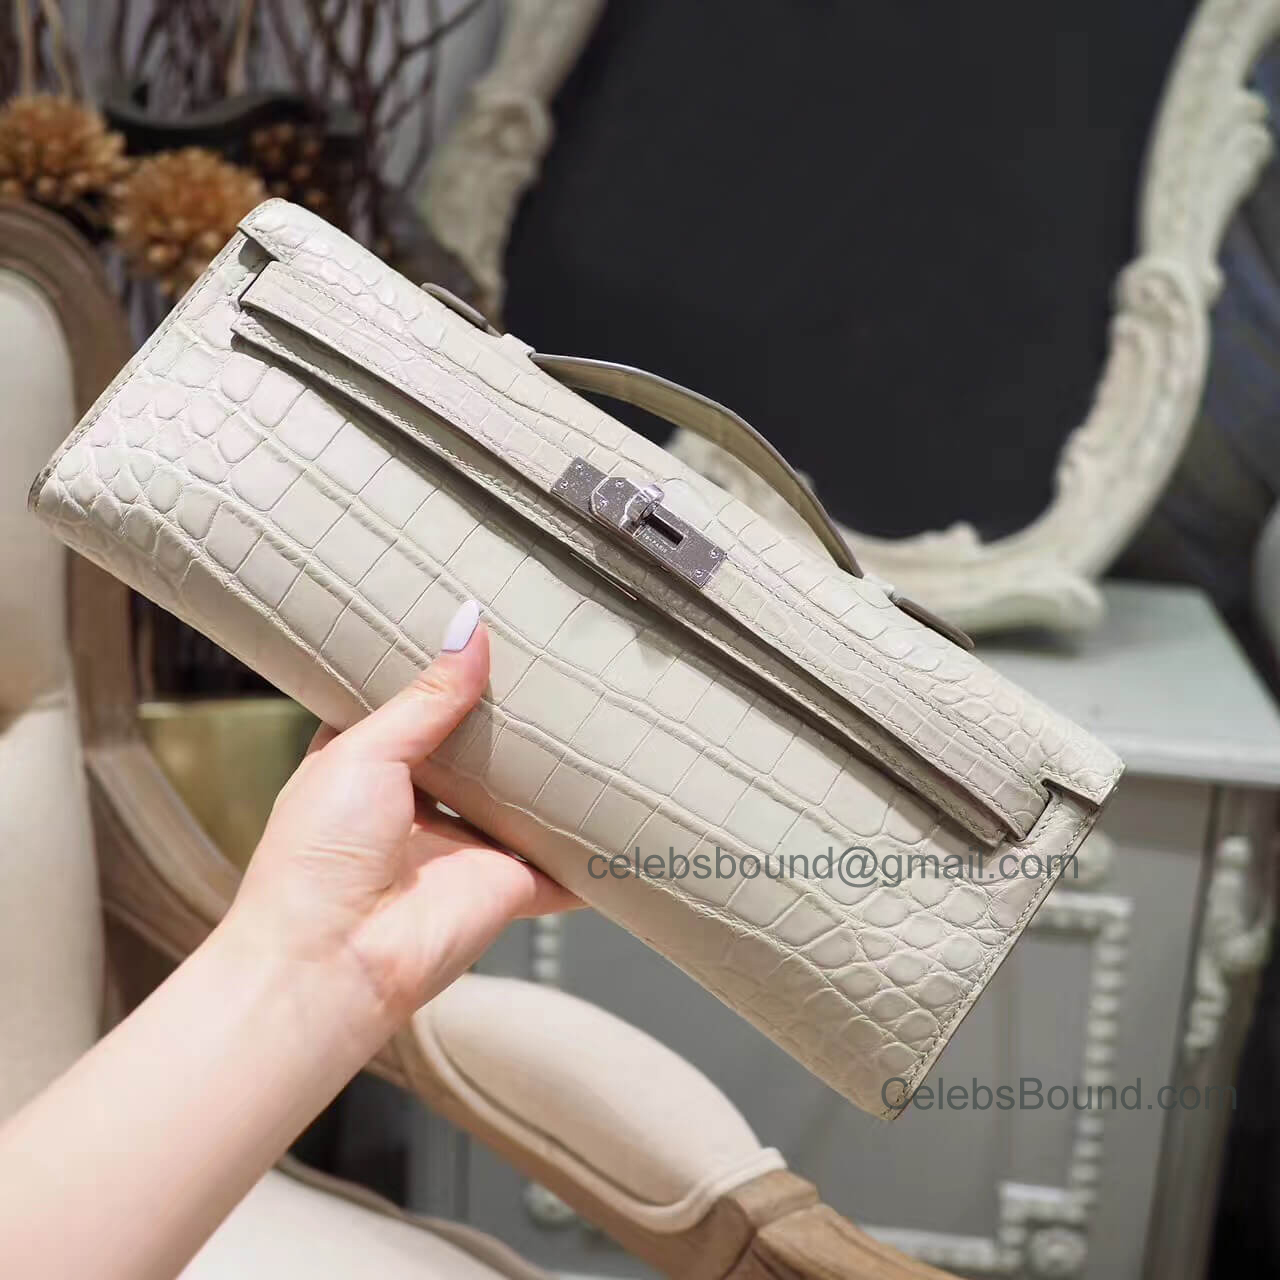 Replica Hermes Kelly Cut 31 Clutch in 8L Beton Matte Porosus Croc PHW